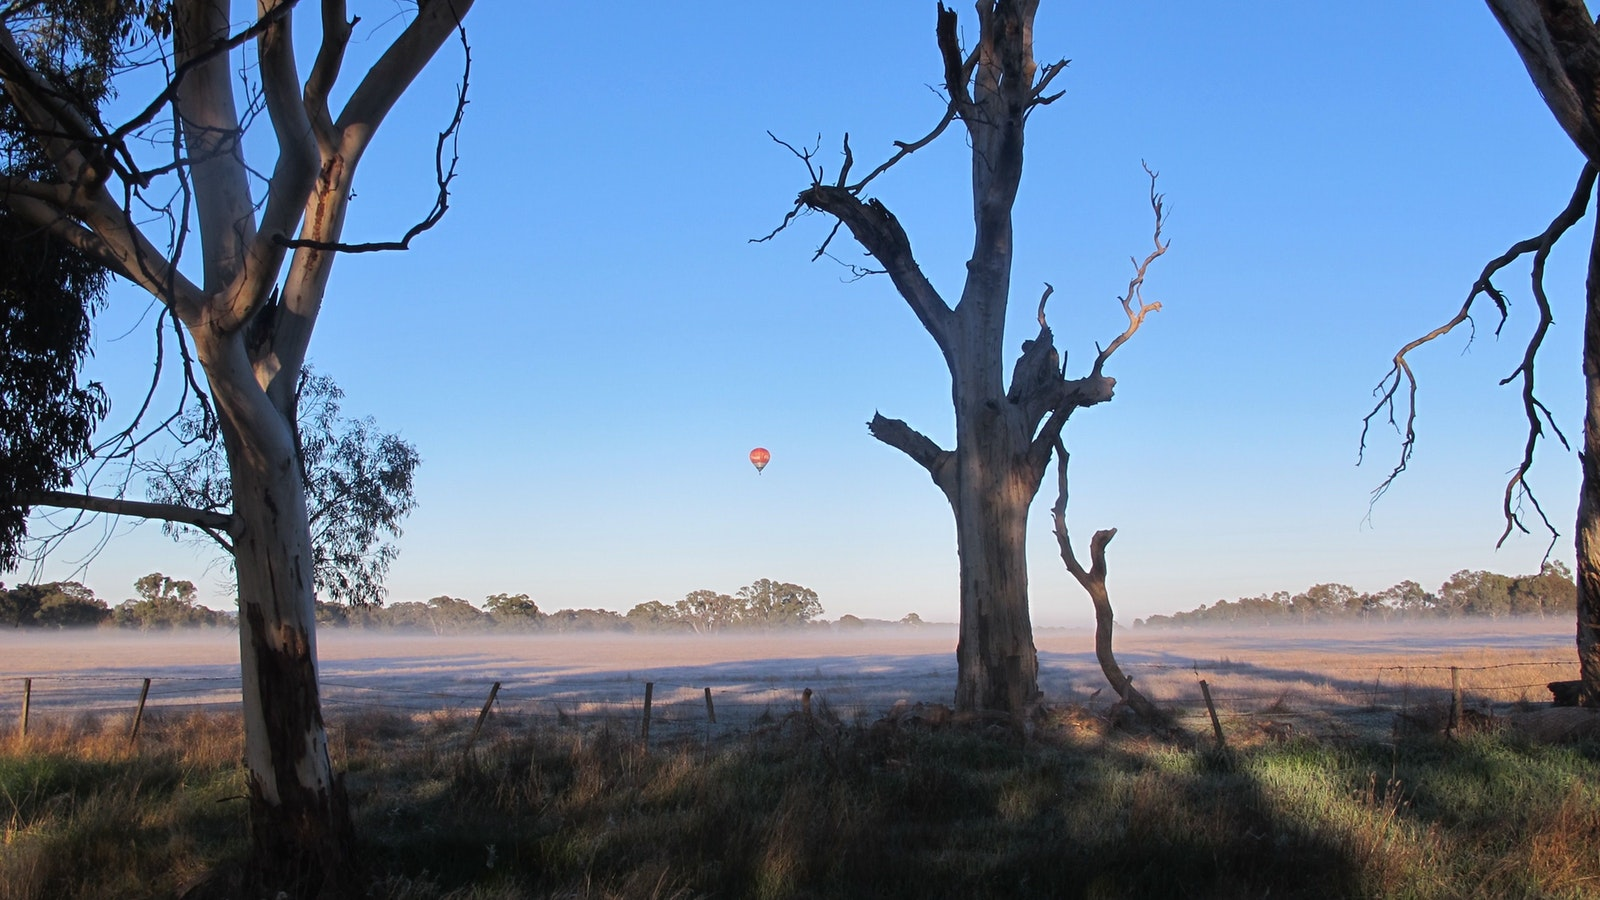 hot air balloon over Daylesford